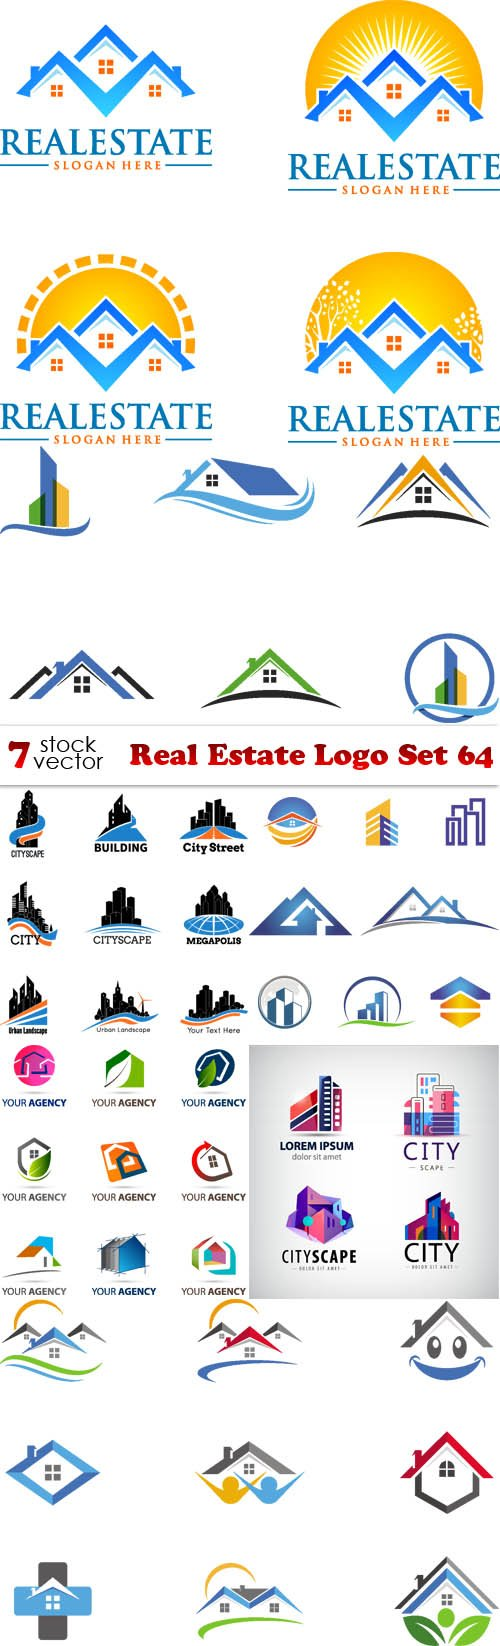 Vectors - Real Estate Logo Set 64